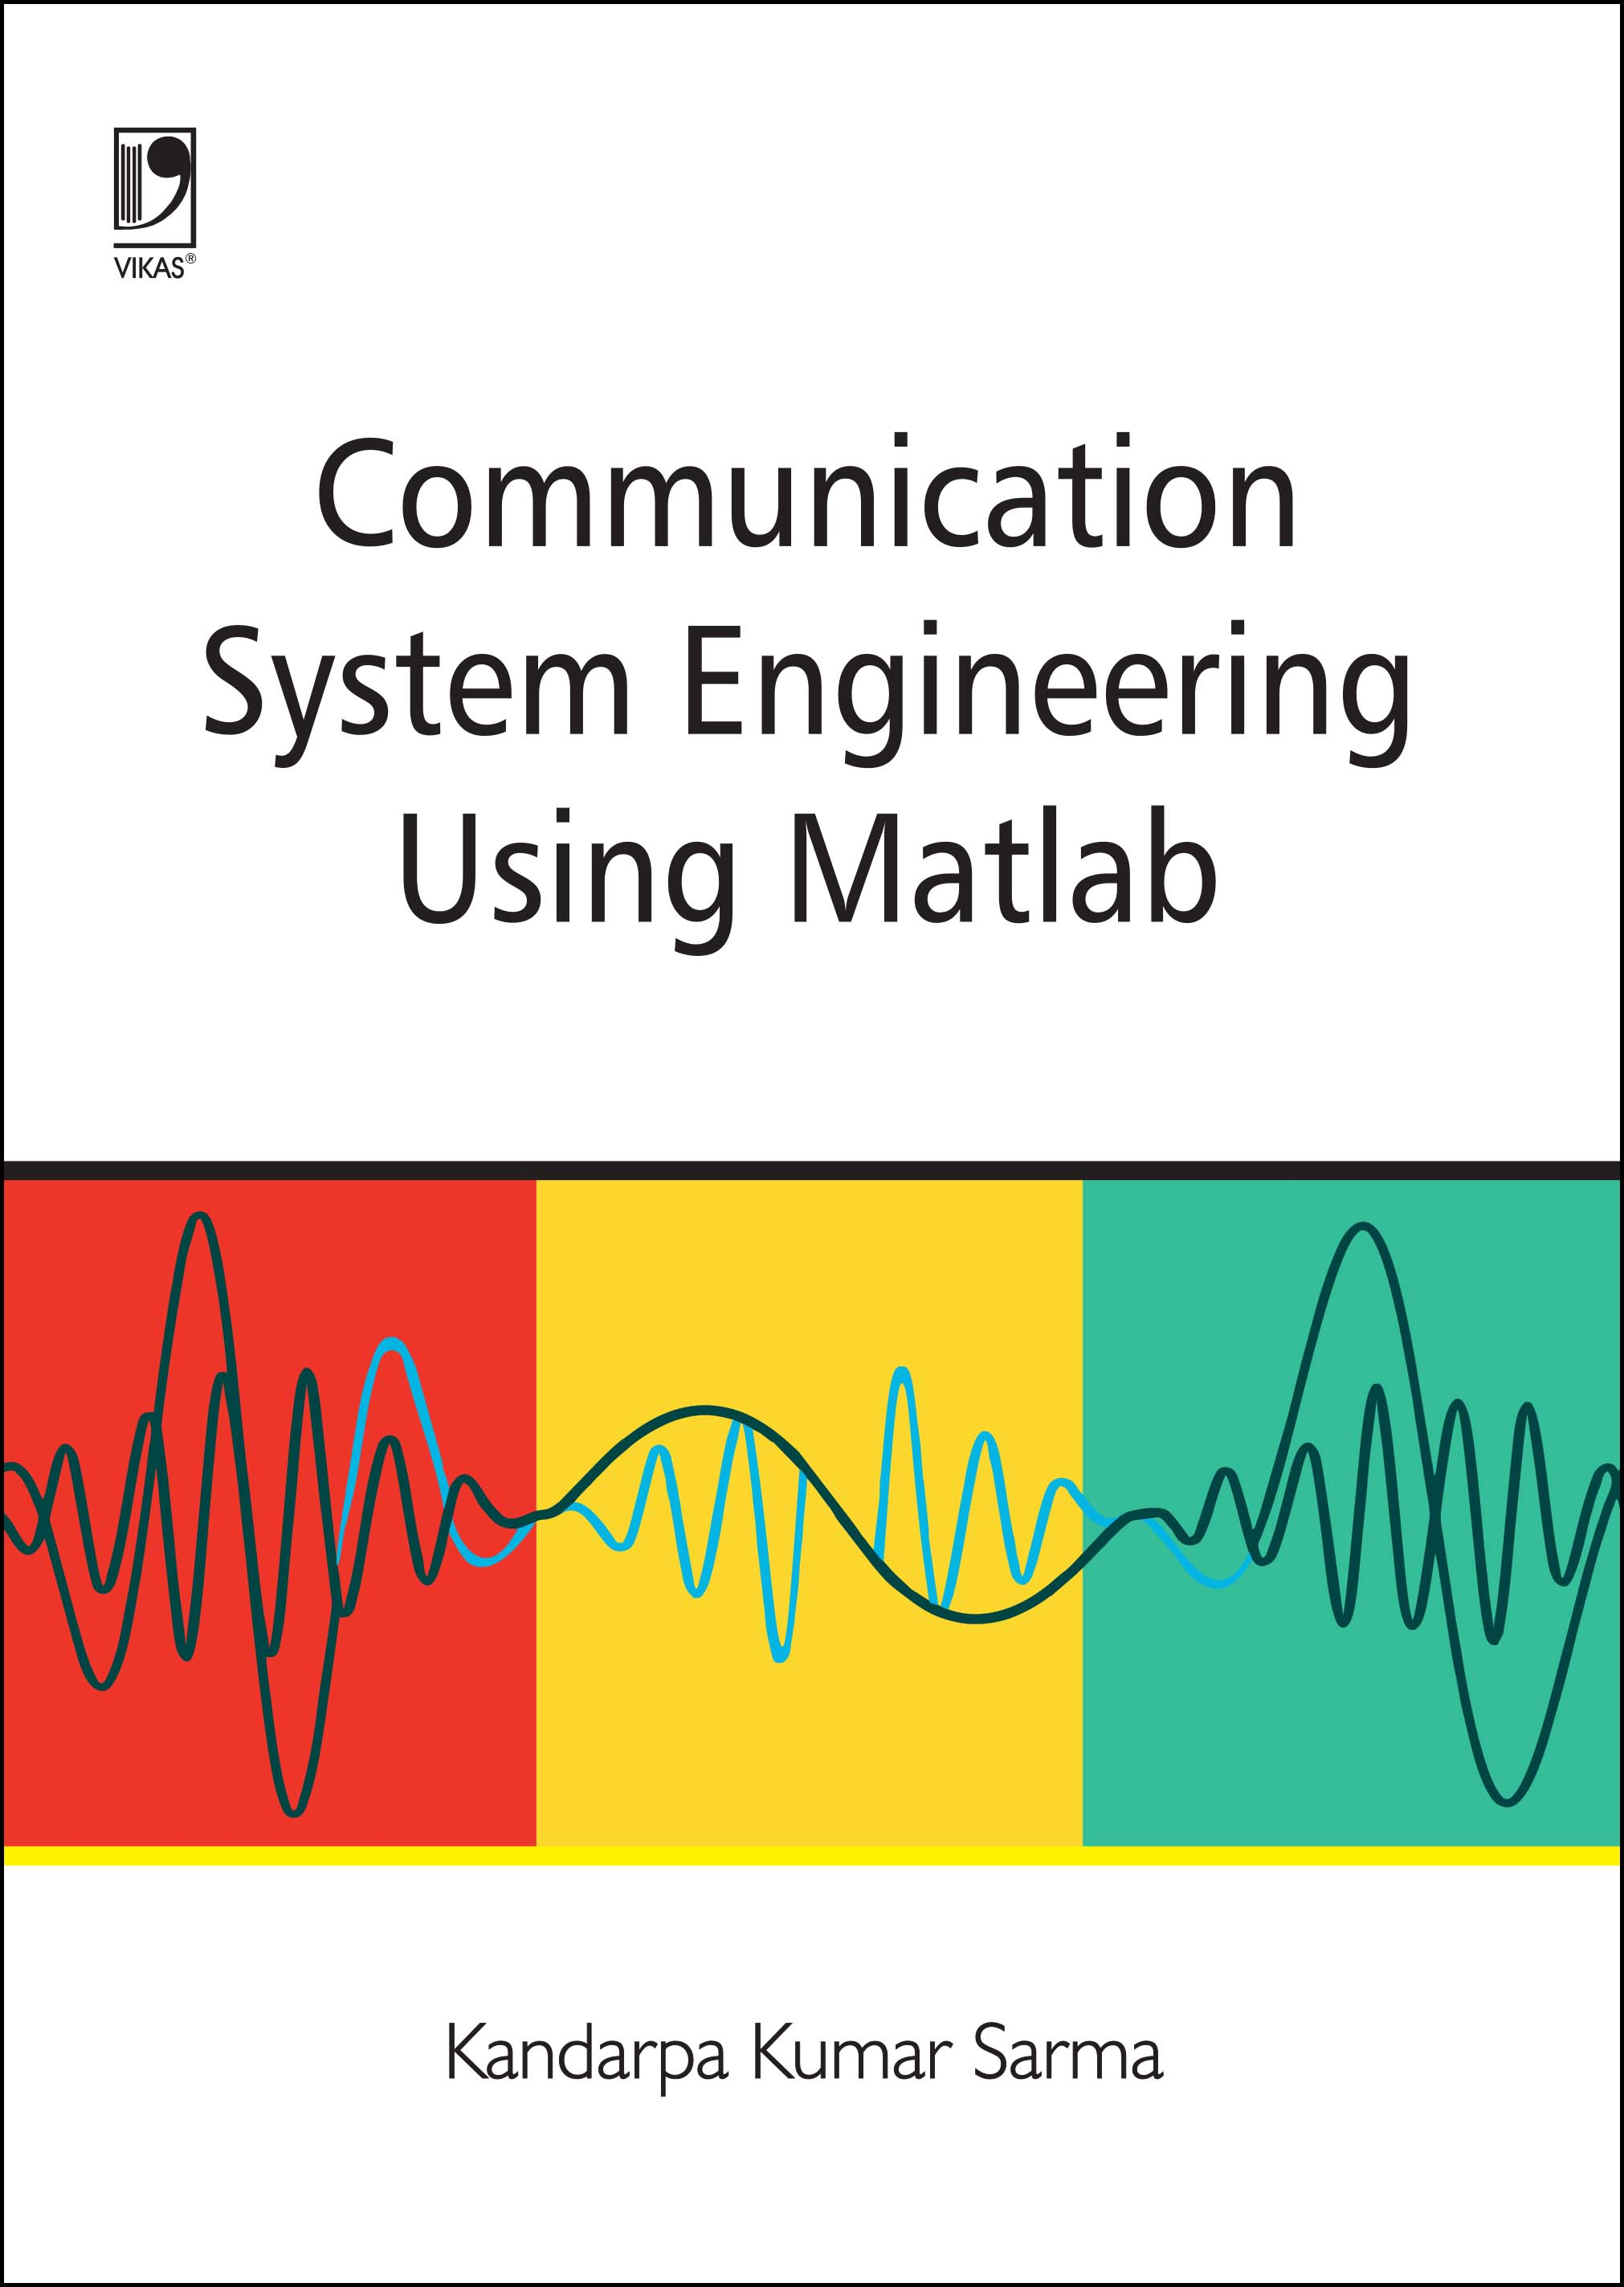 COMMUNICATION SYSTEM ENGINEERING USING MATLAB by  DR. KANDARPA KUMAR SARMA